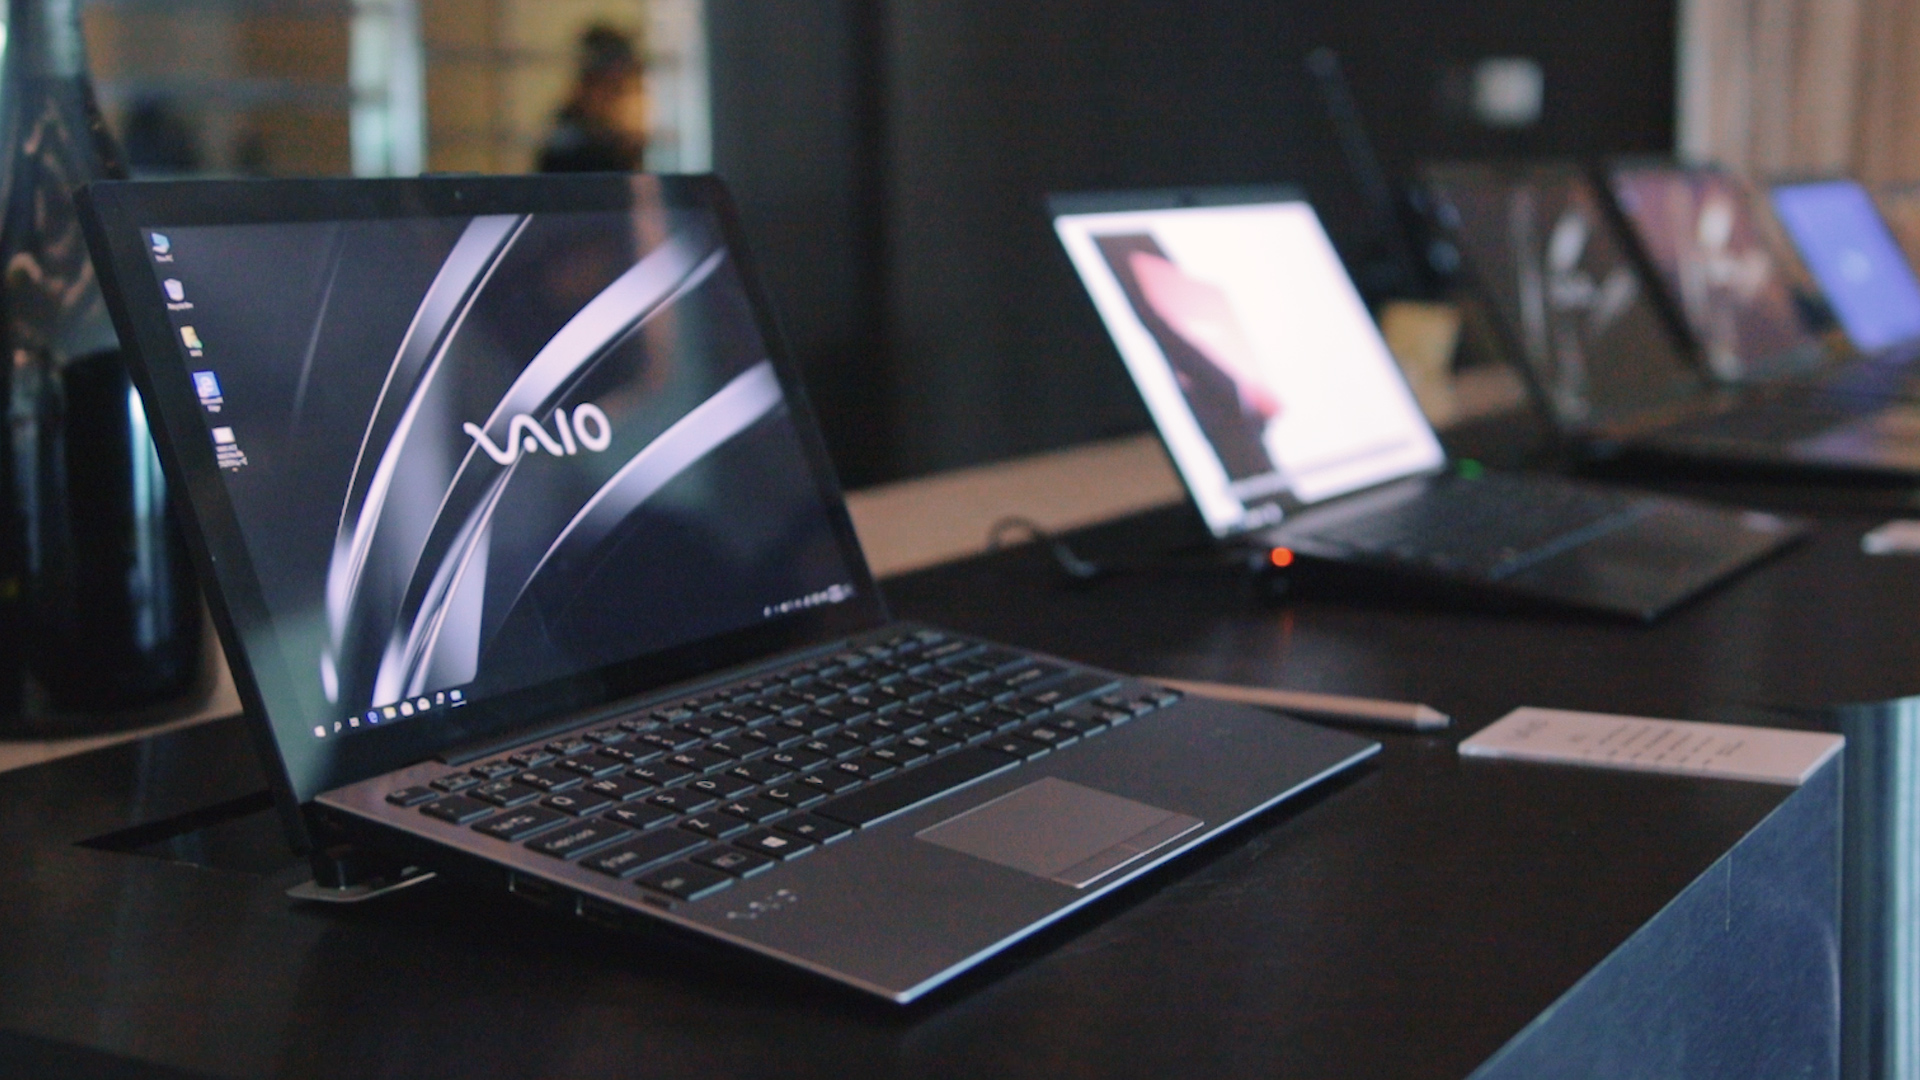 Vaio's new SE14, SX14, and A12 notebooks are invading Singapore!